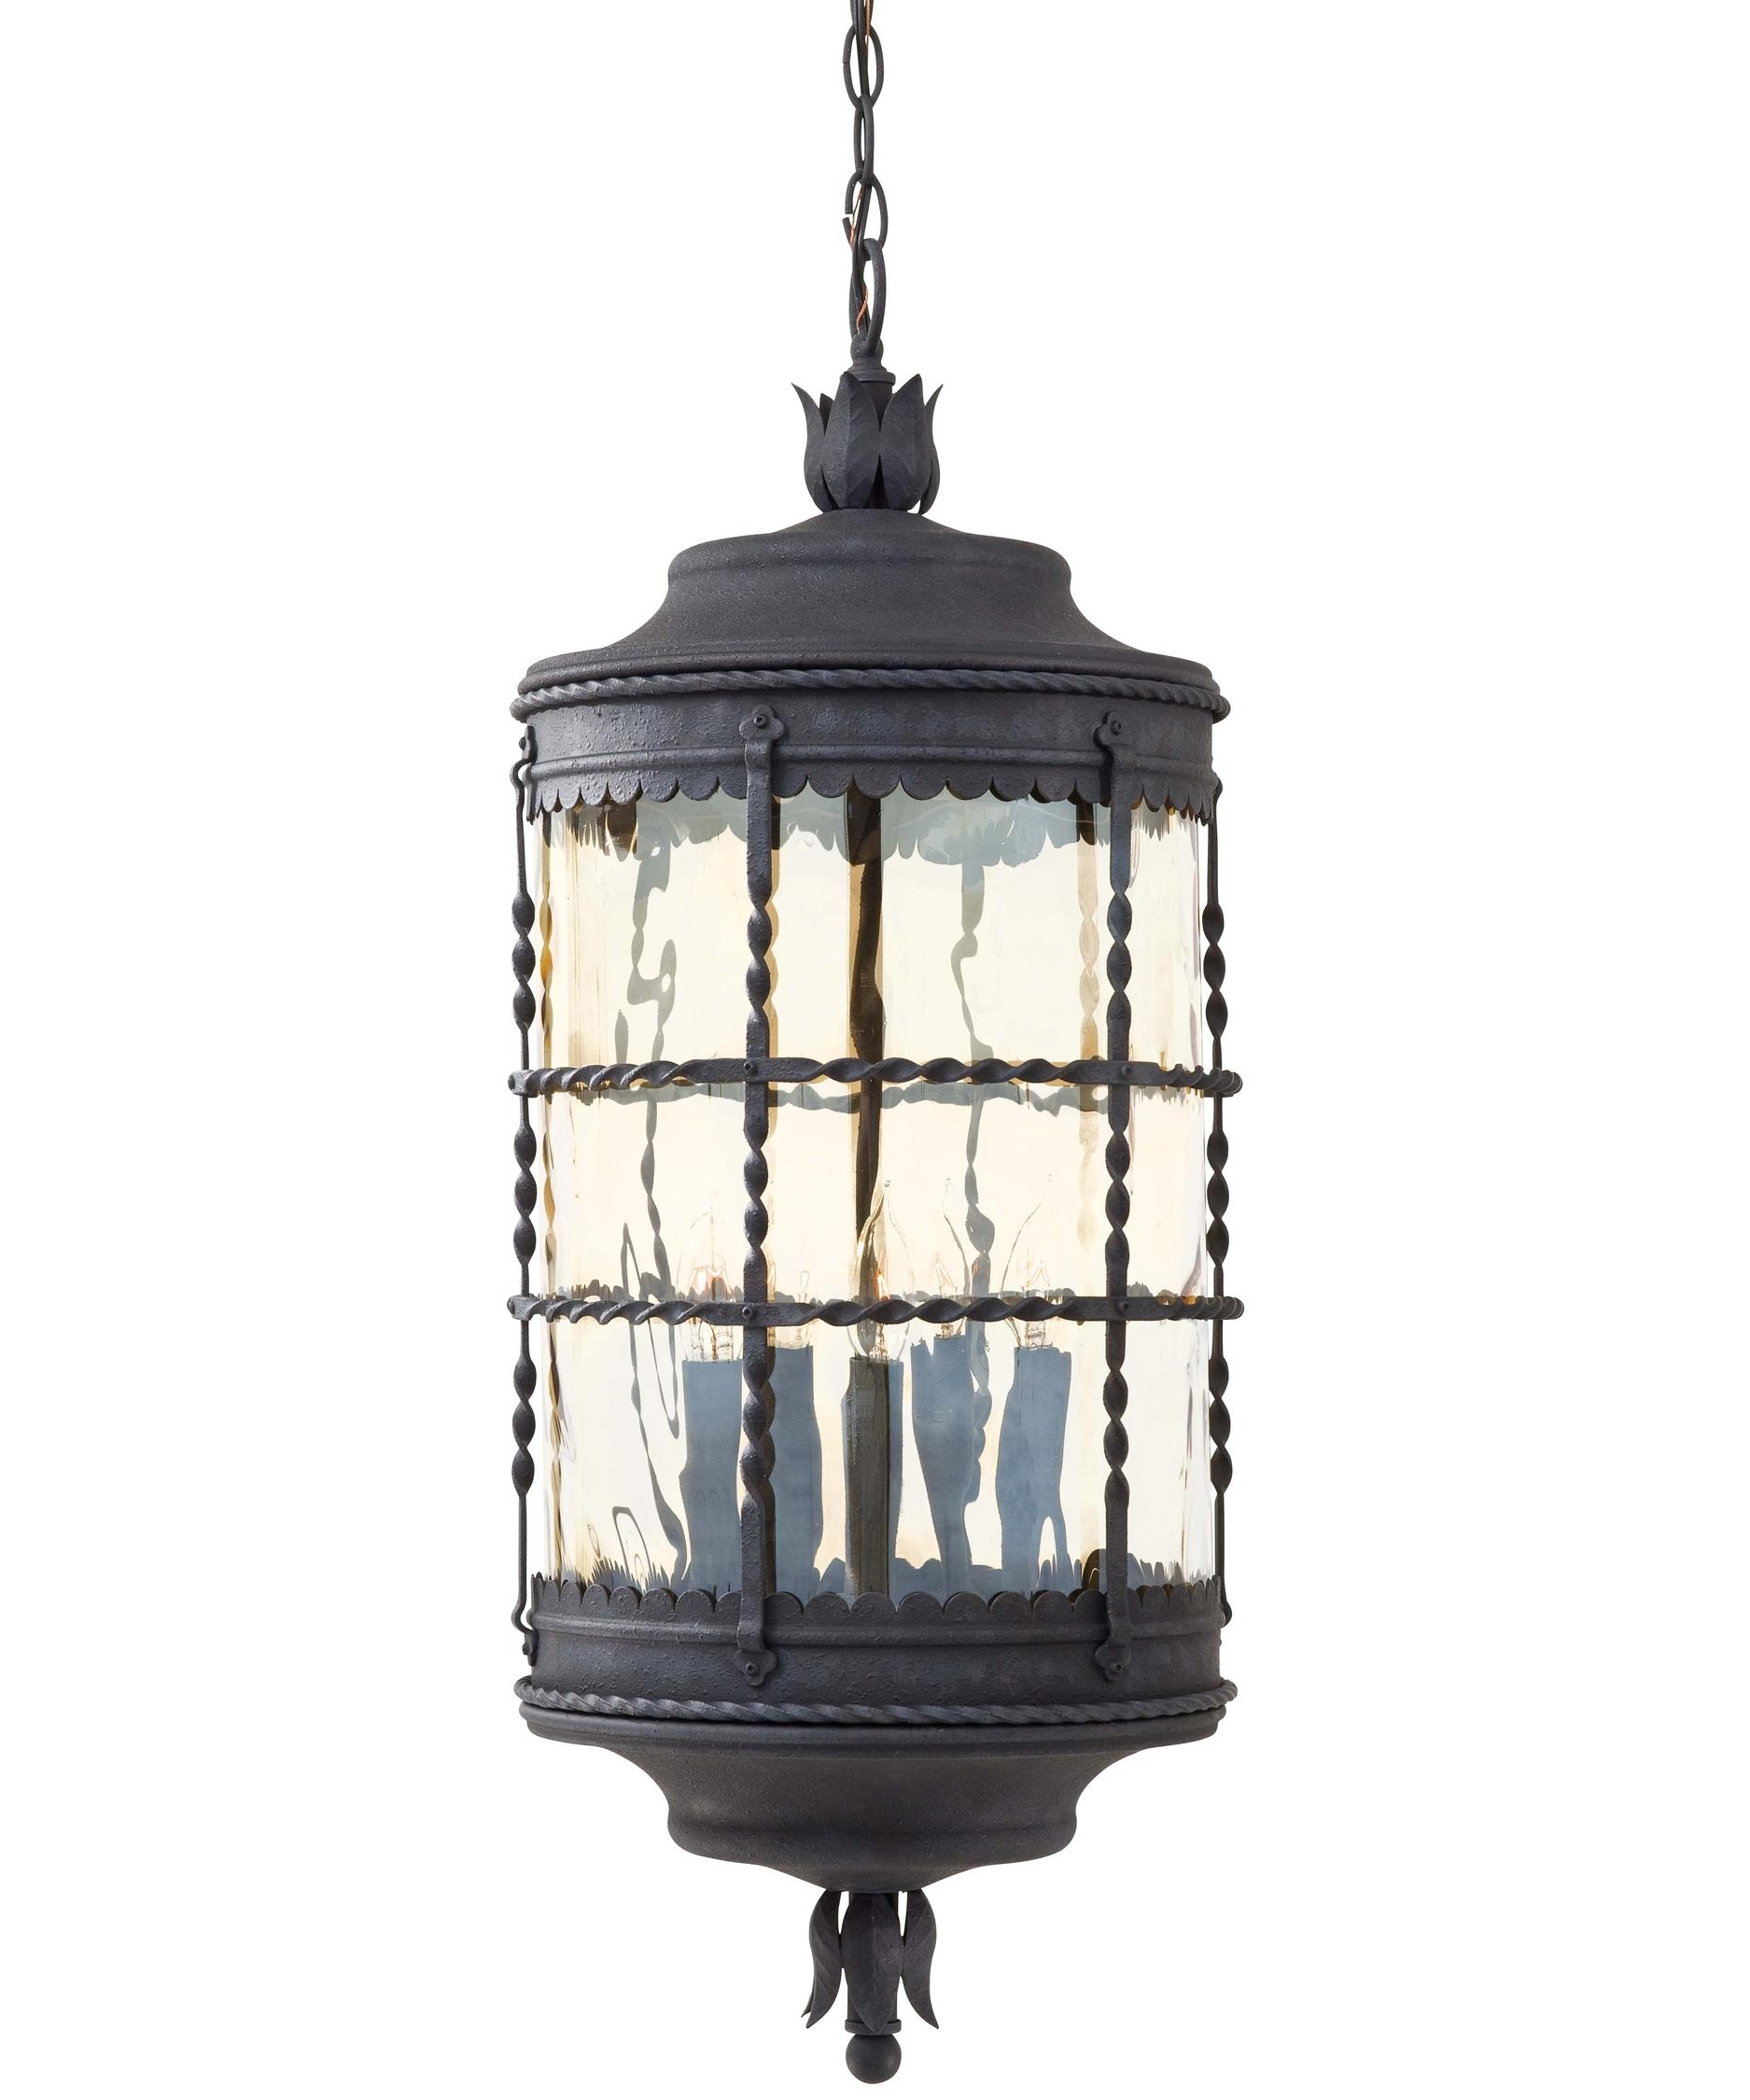 Outdoor Hanging Wall Lanterns Regarding Popular Minka Lavery 8884 Mallorca 13 Inch Wide 5 Light Outdoor Hanging (View 6 of 20)